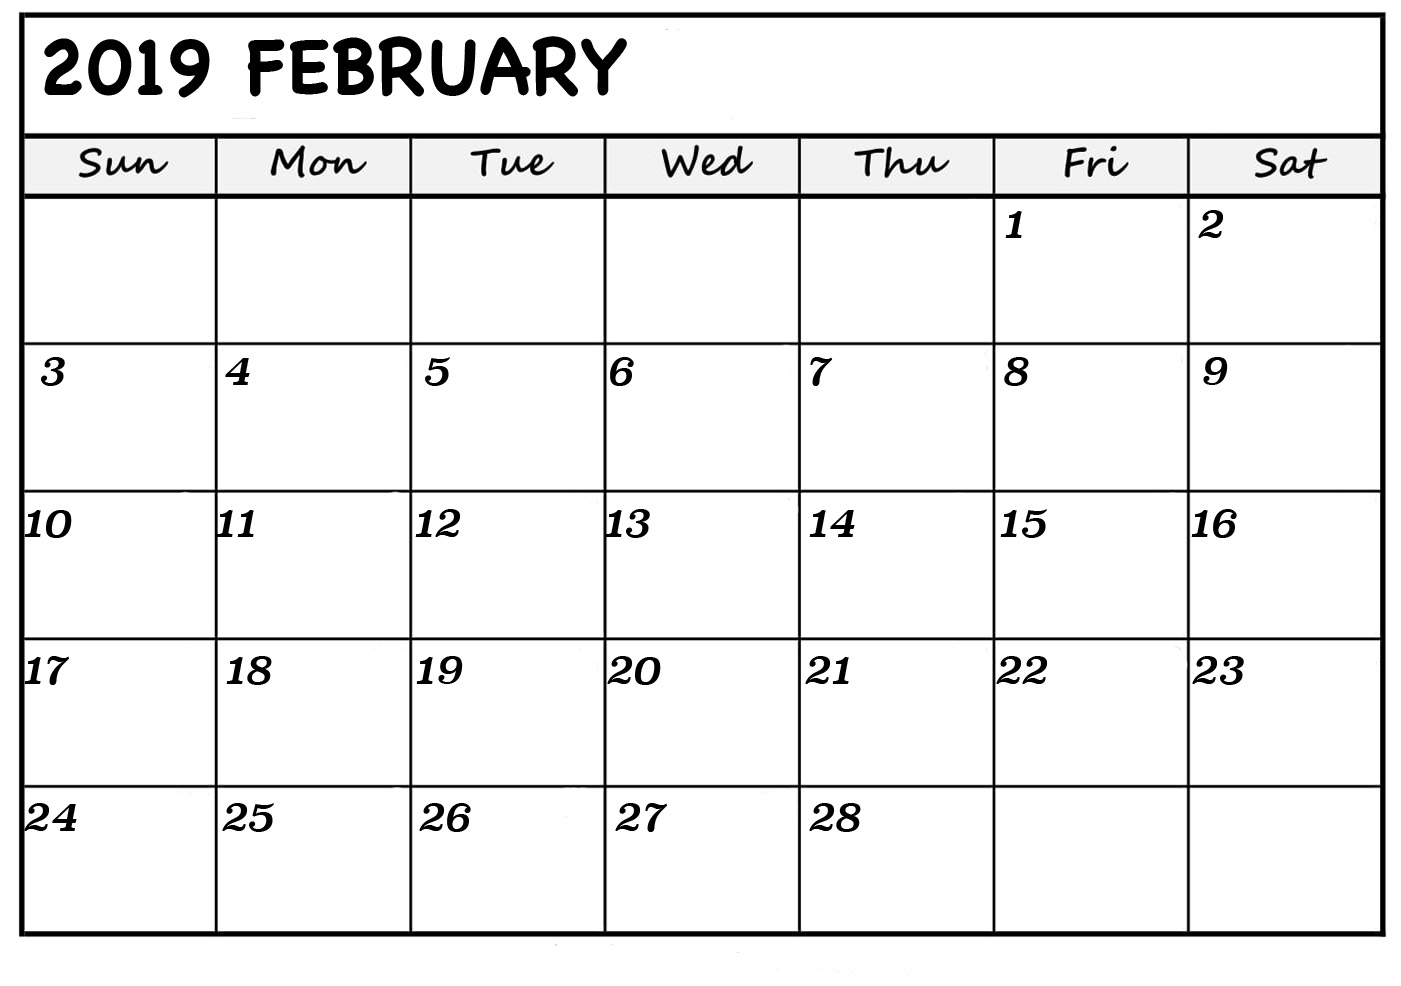 download february 2019 printable calendar pdf excel word::February 2019 Calendar Word